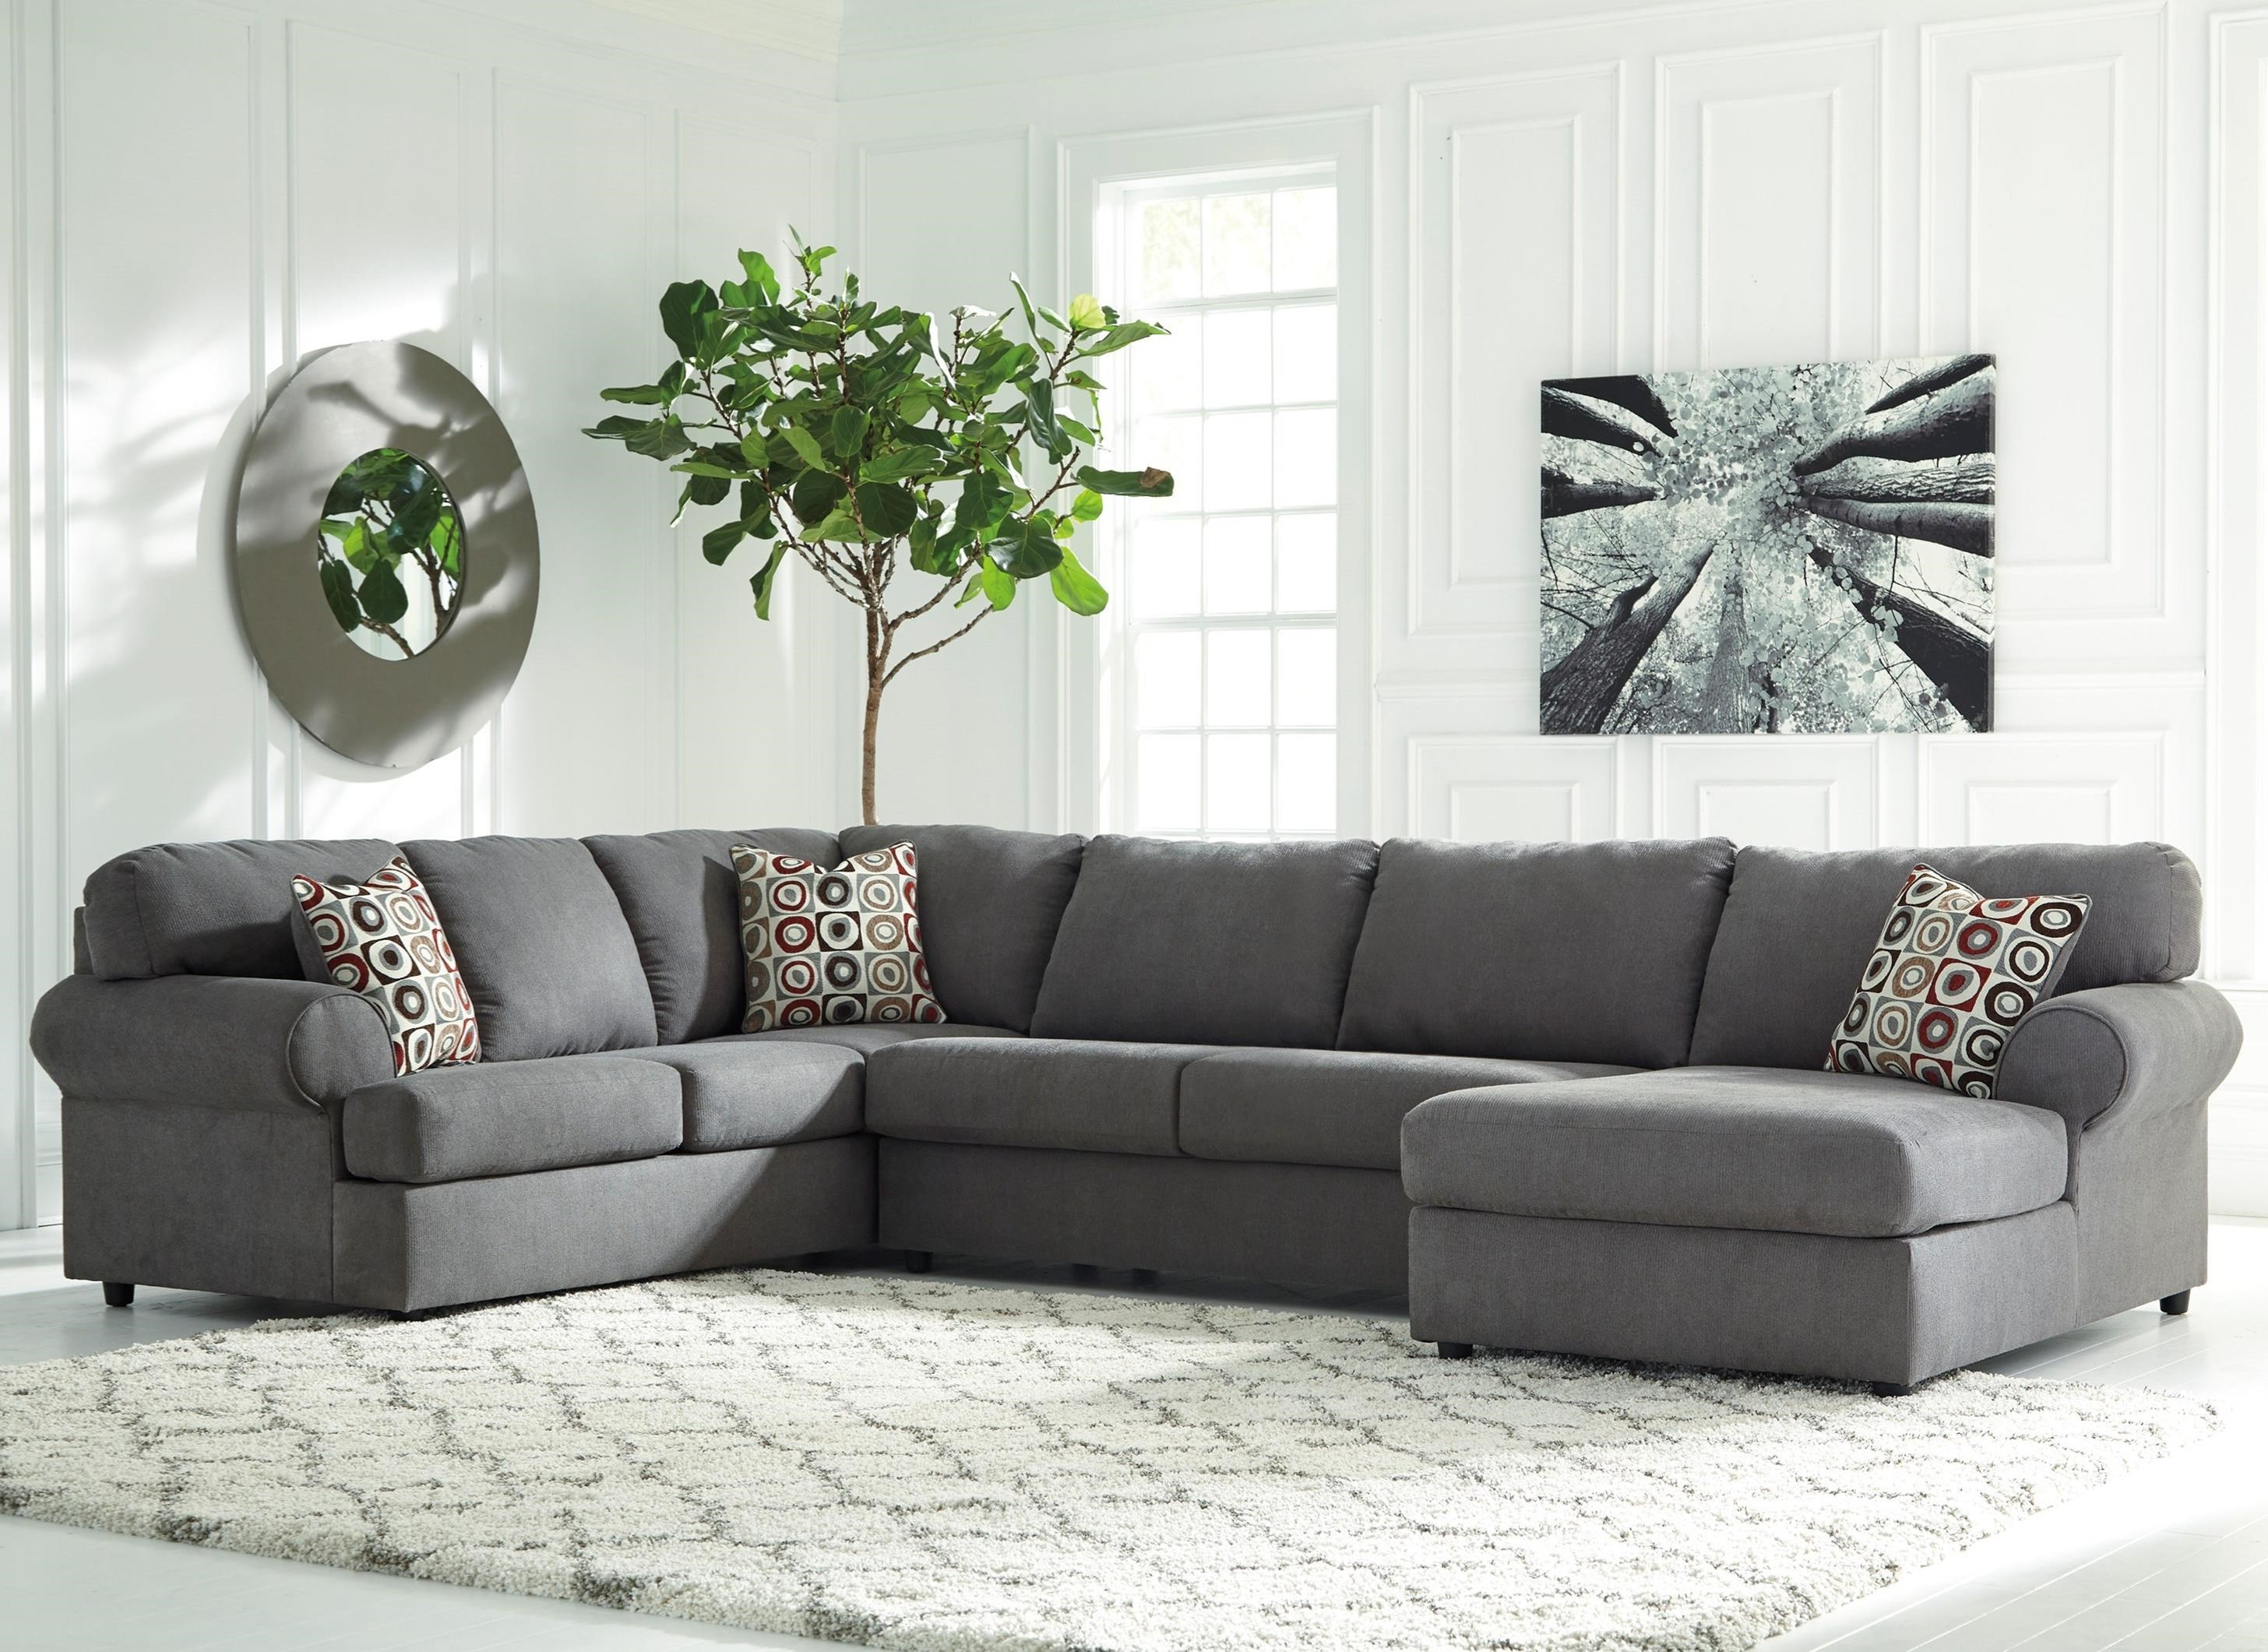 Preferred Delano 2 Piece Sectionals With Laf Oversized Chaise With Regard To Sectional Chaise – Locsbyhelenelorasa (View 7 of 20)